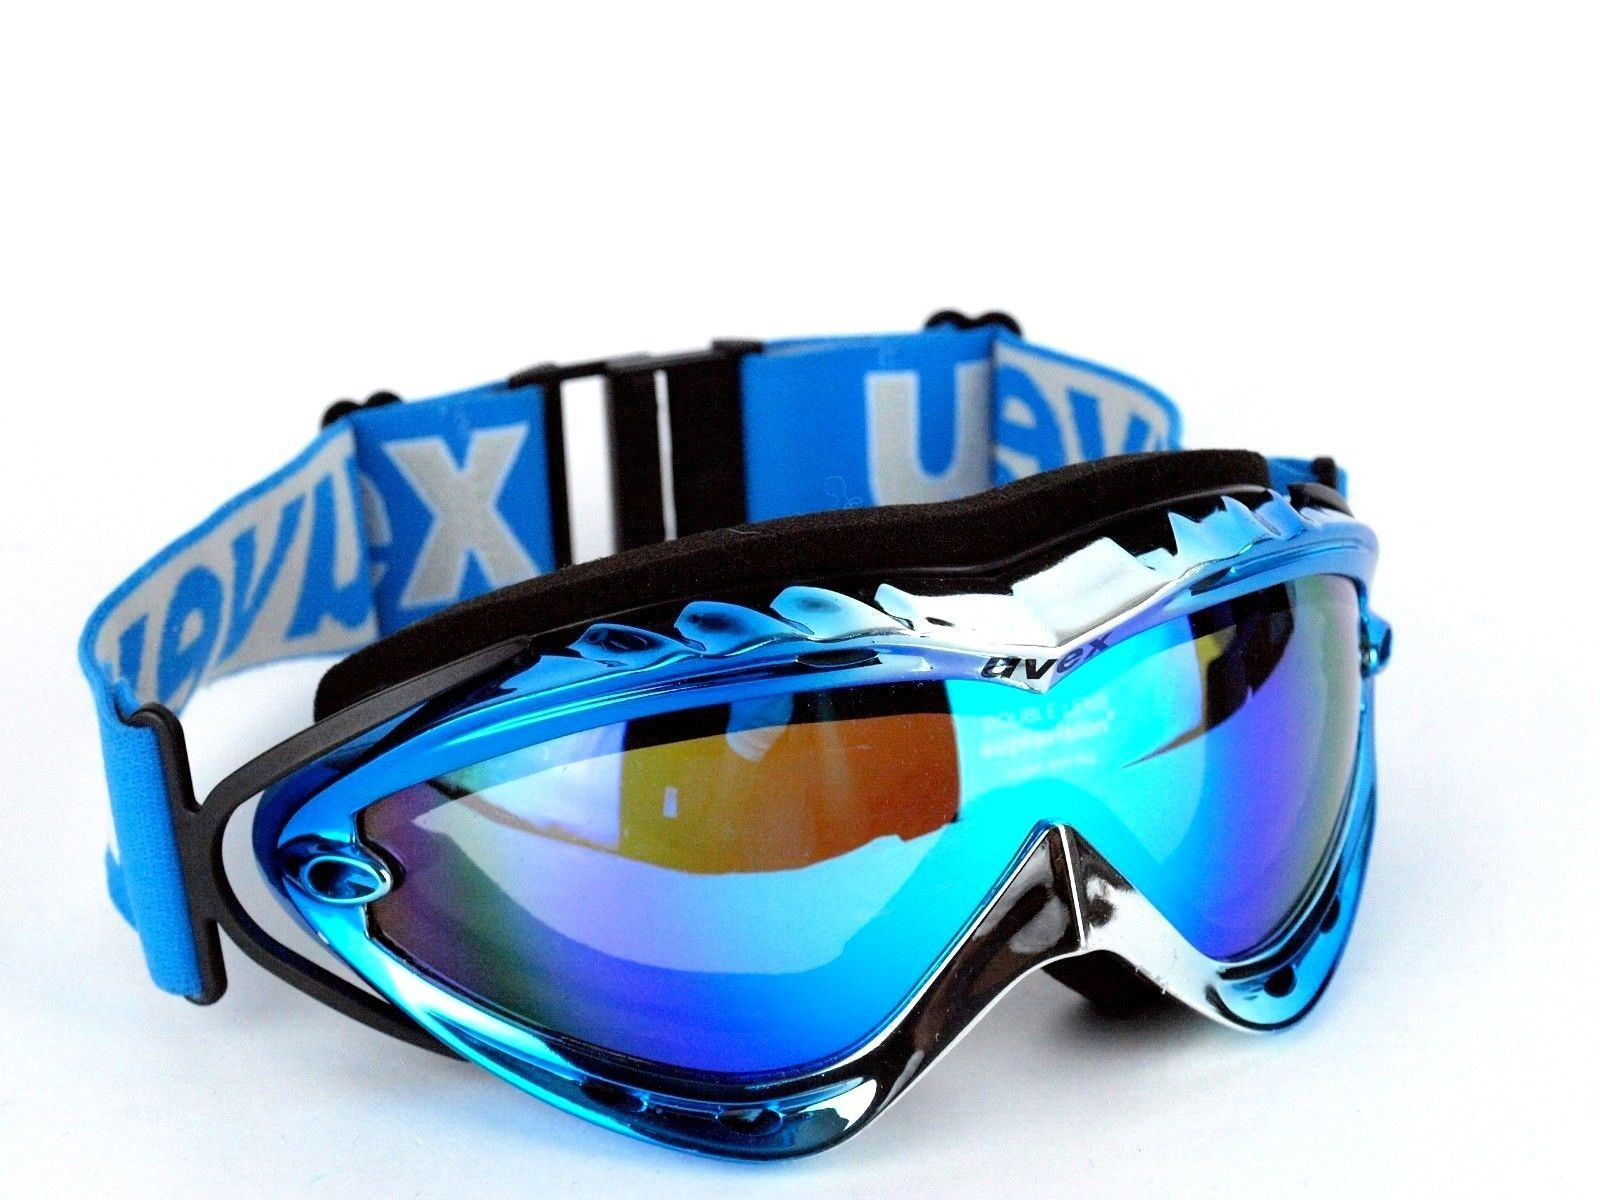 ae37b27a54d3f UVEX Ultrasonic Ski Snowboard Goggles Double and 50 similar items